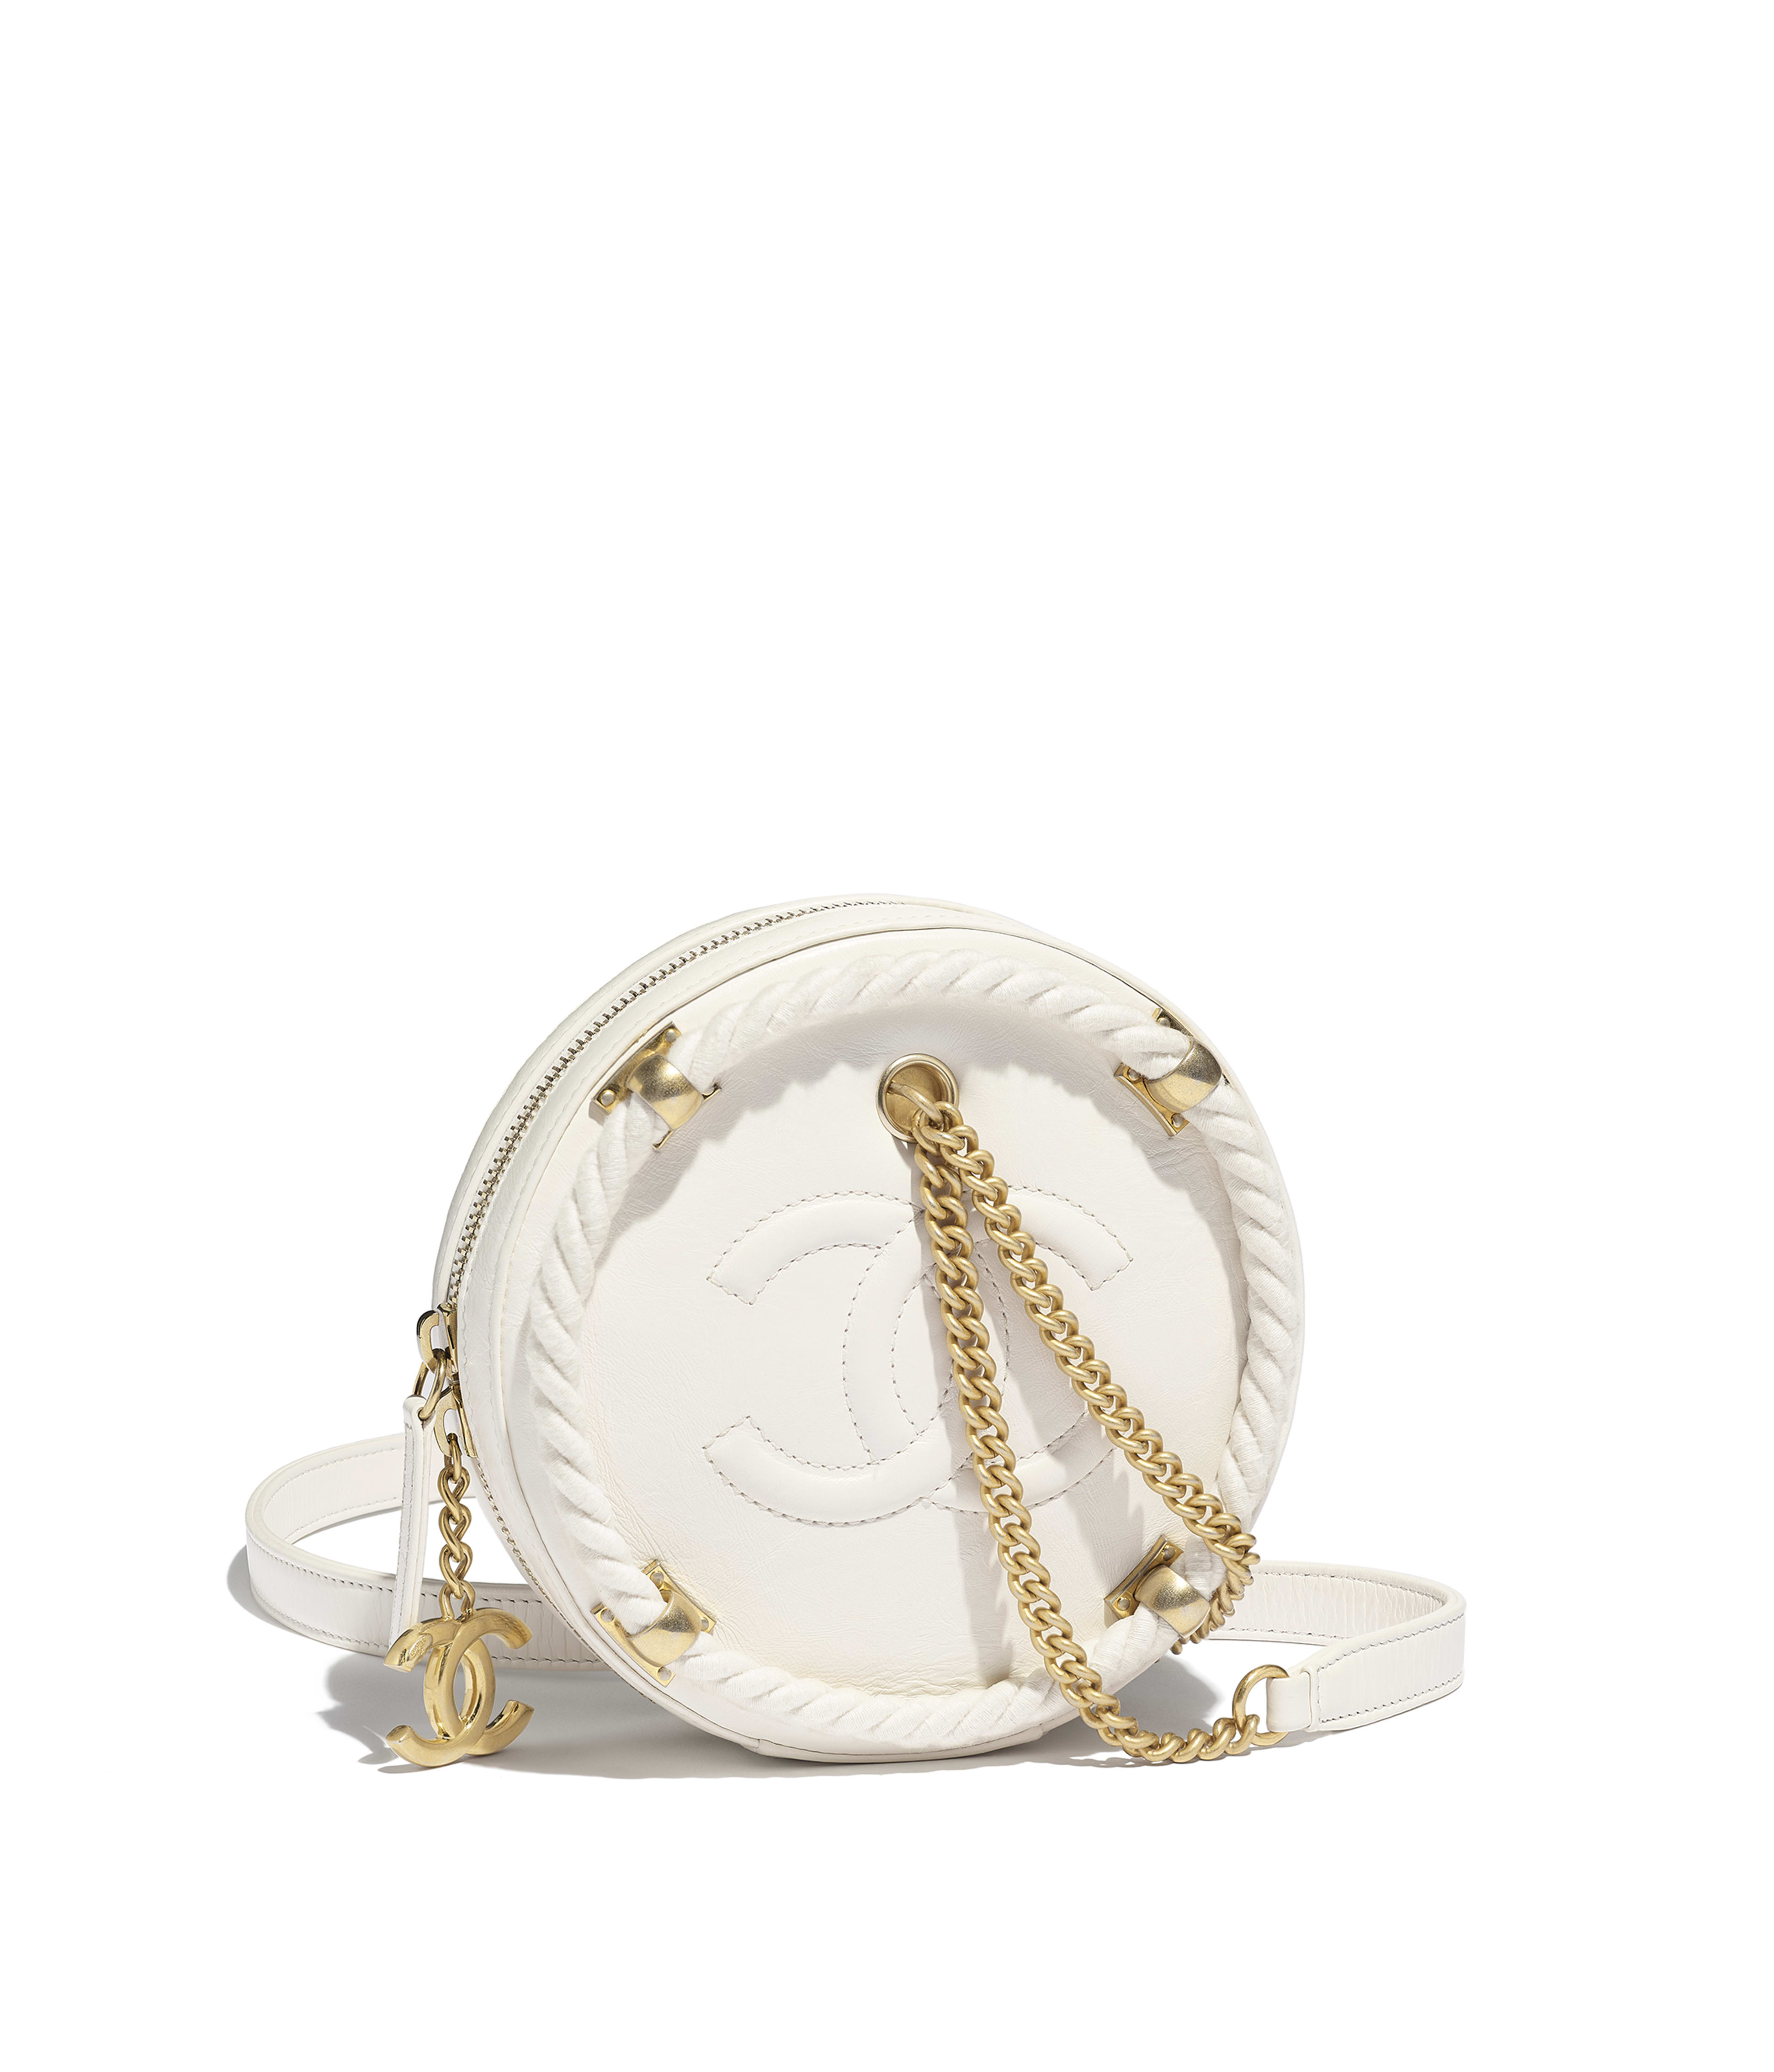 Small Round Bag Crumpled Calfskin Cotton Gold Tone Metal White Ref As0075y8410010601